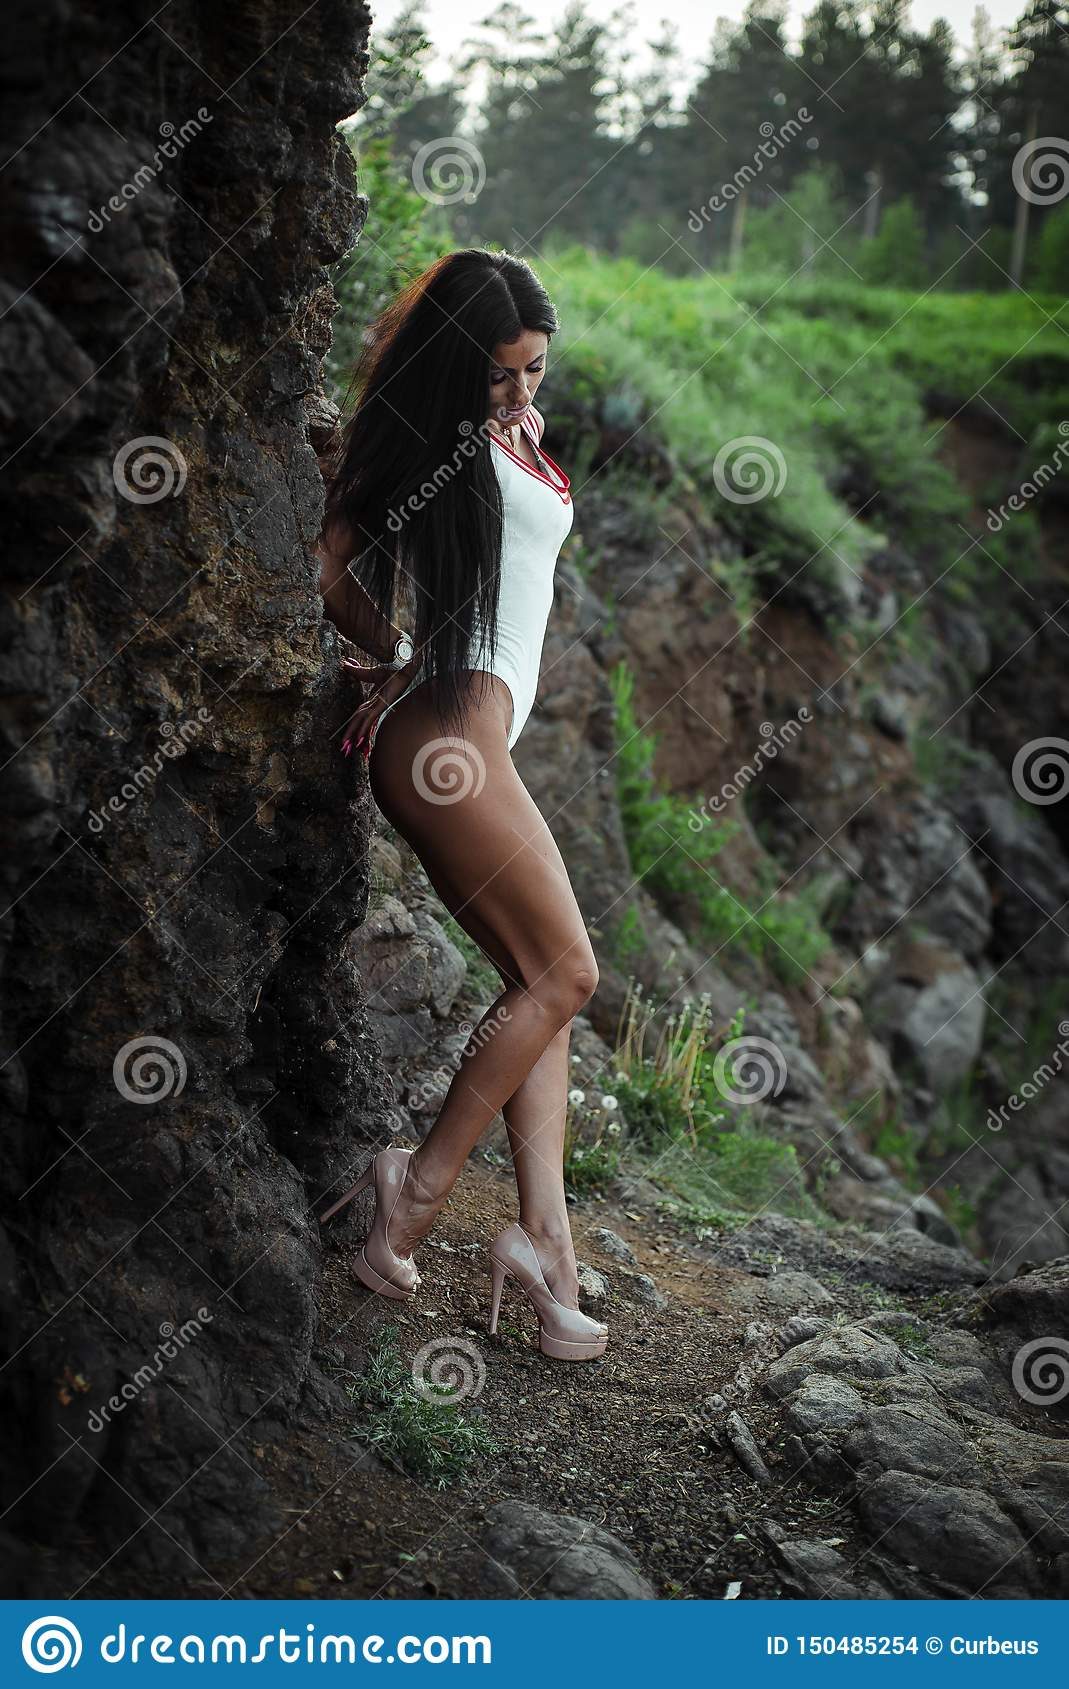 Beautiful young woman in white bodysuit with heels posing on stone background. Outdoor. Green